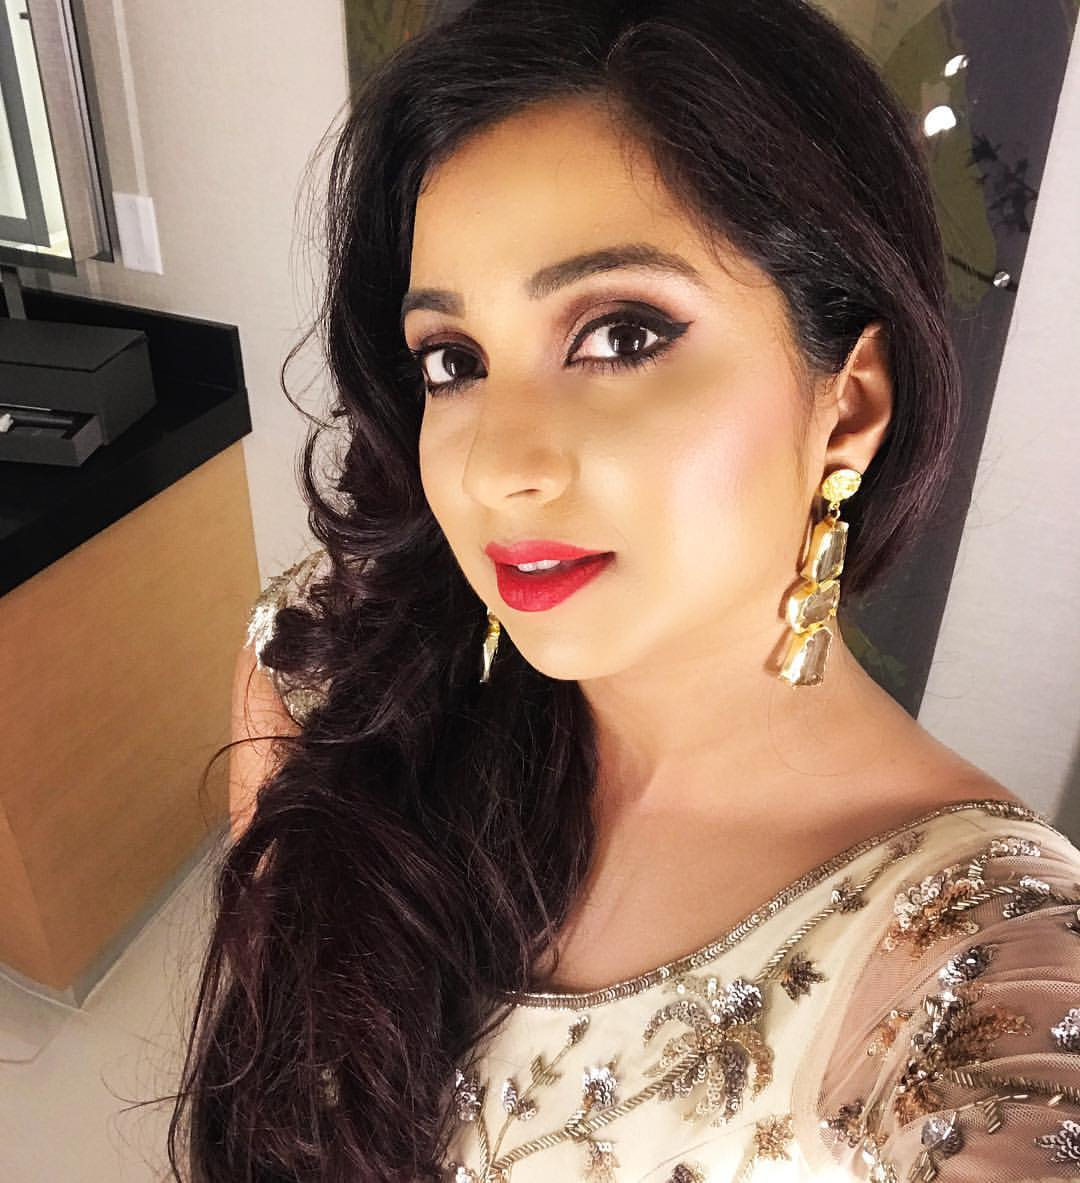 Dating for sex: shreya ghoshal dating shekhar ravjiani twitter